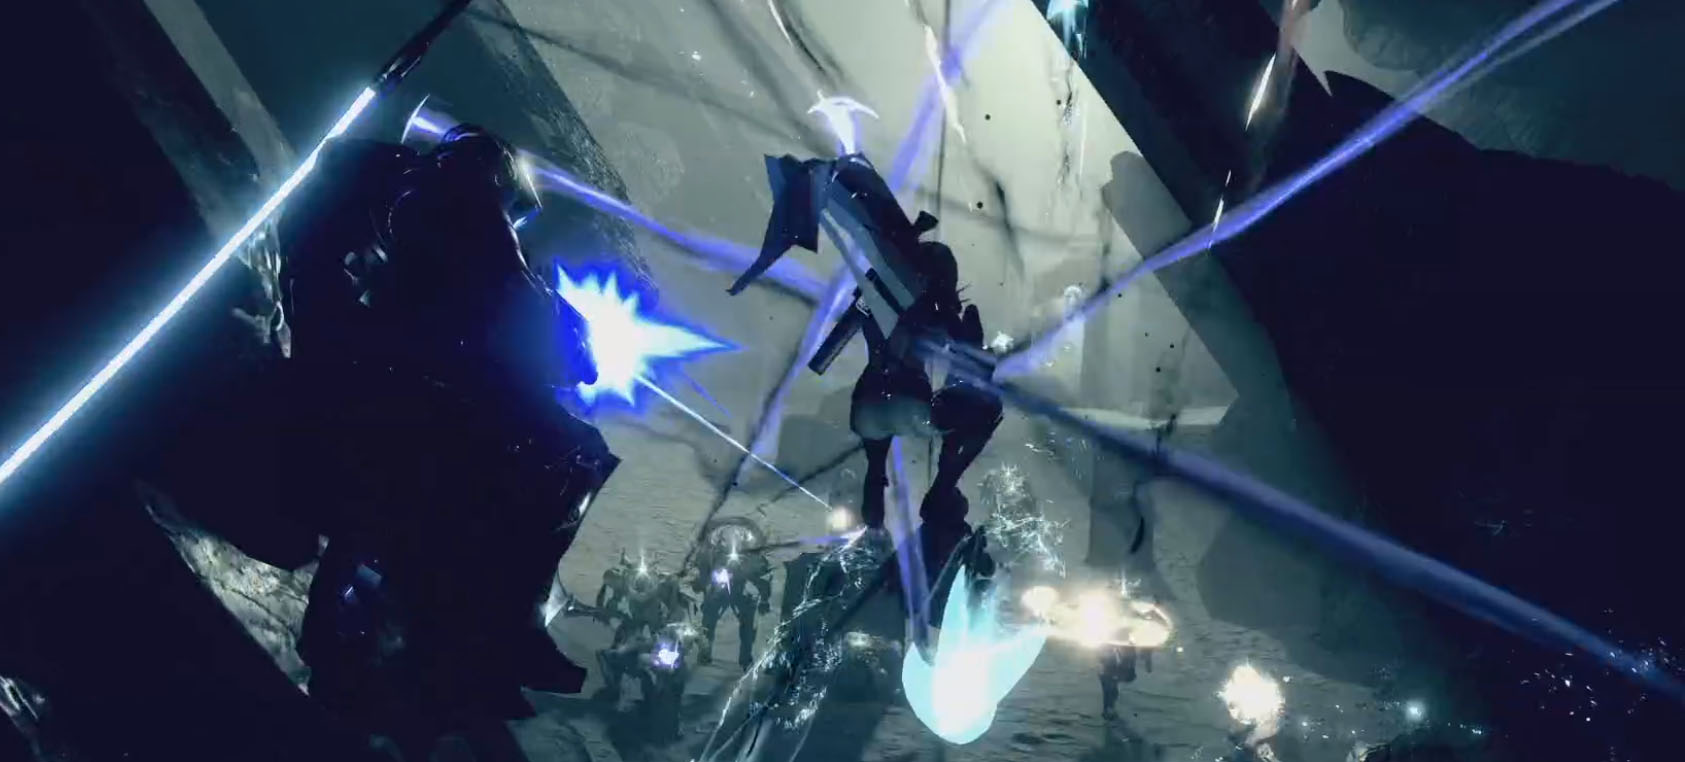 Here's a better look at some of Destiny 2: Beyond Light's new features screenshot